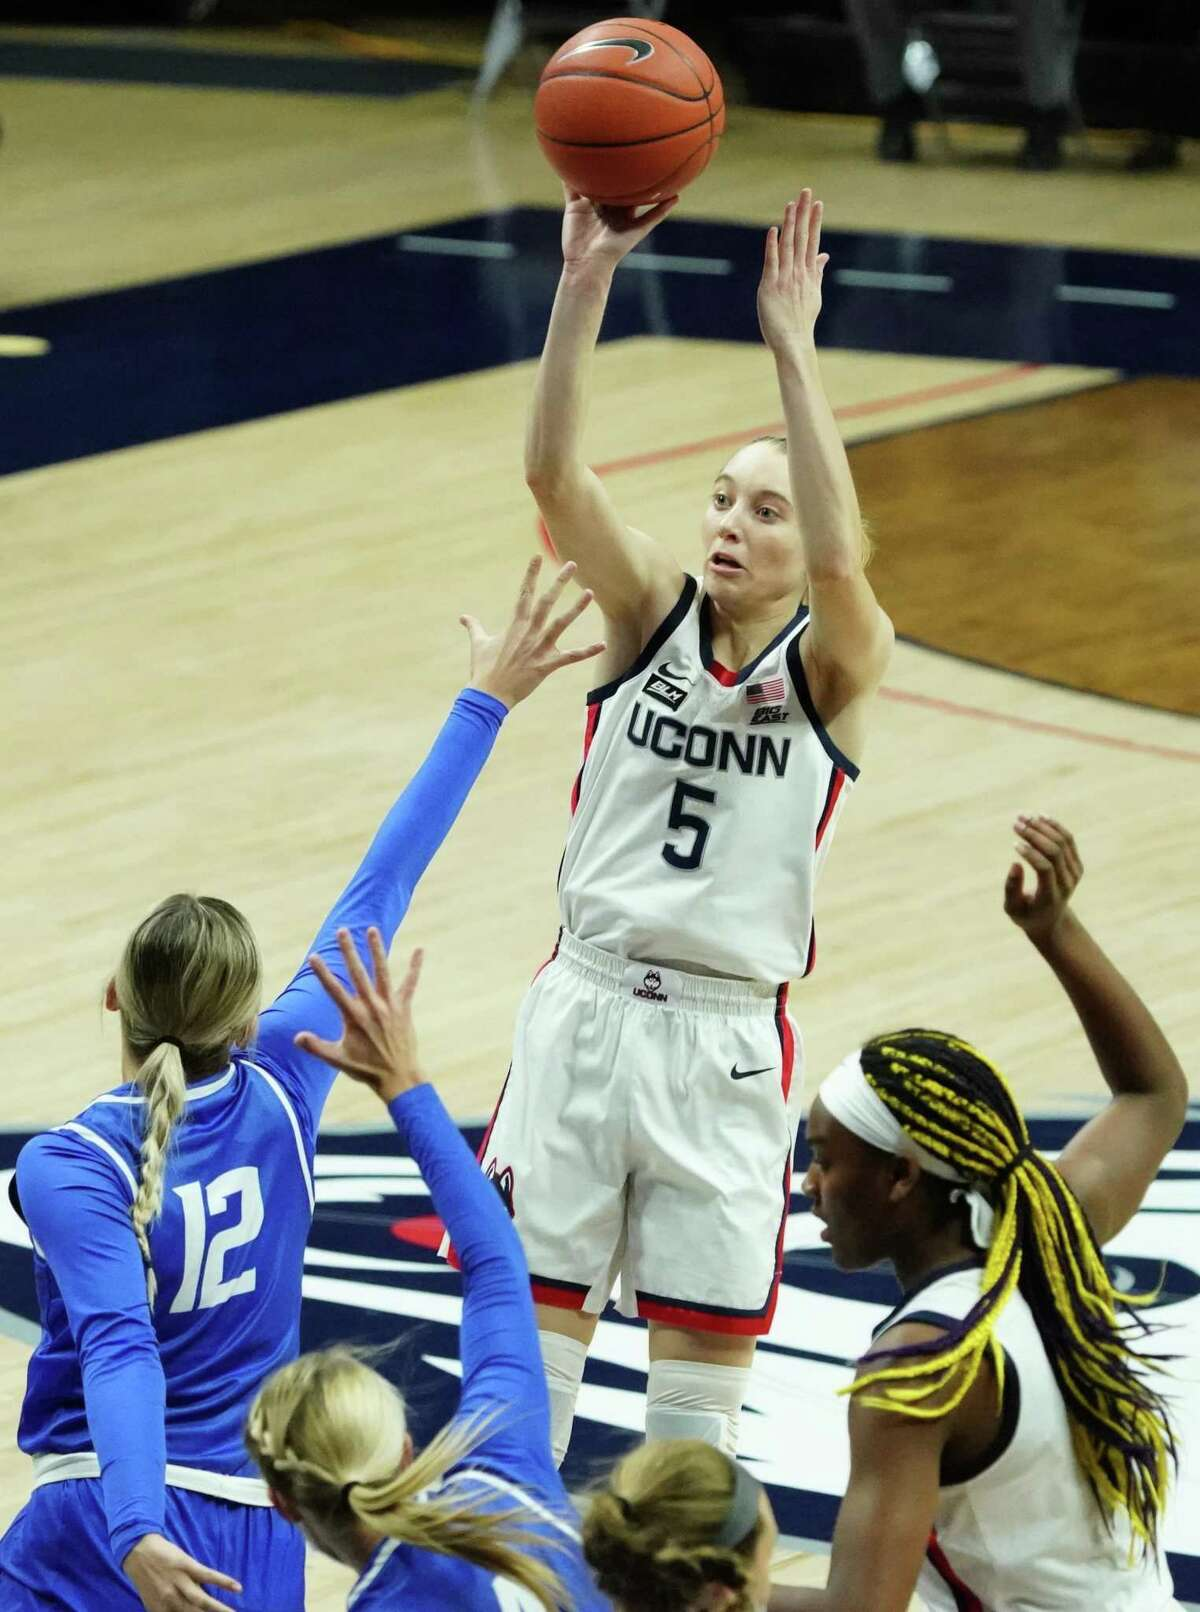 UConn's Paige Bueckers (5) shoots against Creighton's Gracey Griglione (12) in Thursday's game in Storrs.